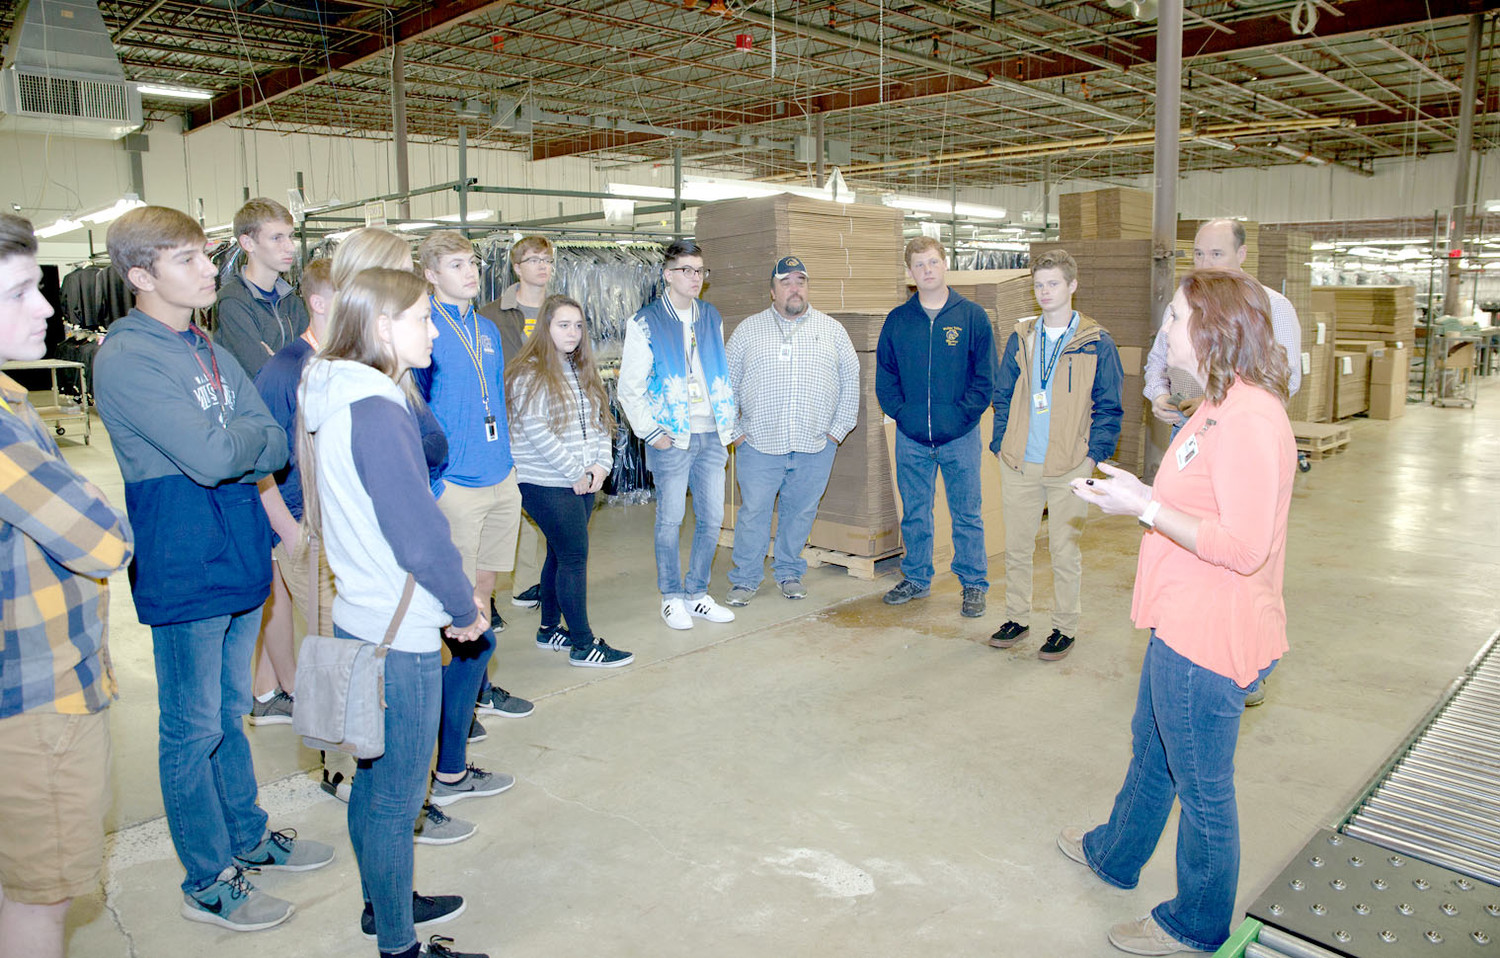 THE WALKER VALLEY High School Mechatronics class took a tour of the Hardwick Clothes facility on Friday.  The students were able to experience all aspects of the clothing manufacturing process, from design all the way to shipping.  Amanda Burns, of Hardwick Clothes, explains the importance of the shipping process to delivering an appealing product to store shelves.